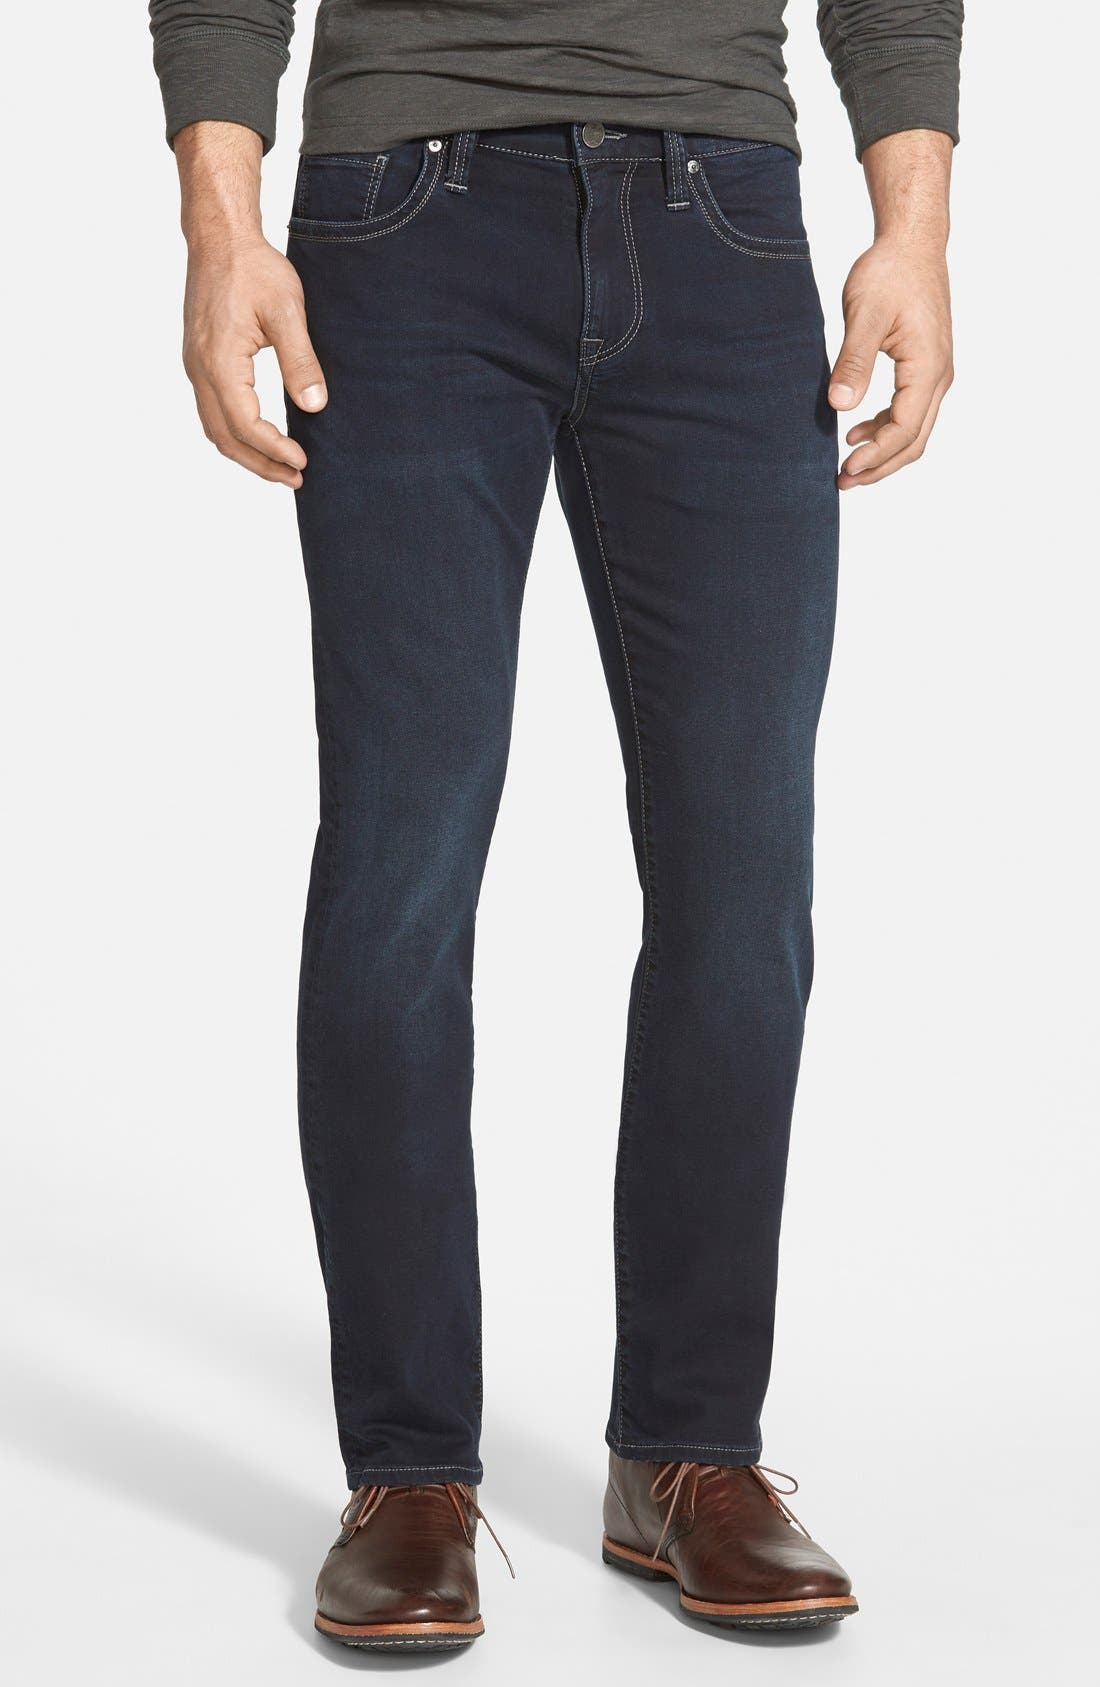 34 Heritage 'Courage' Classic Straight Leg Jeans (Midnight Austin) (Online Only)